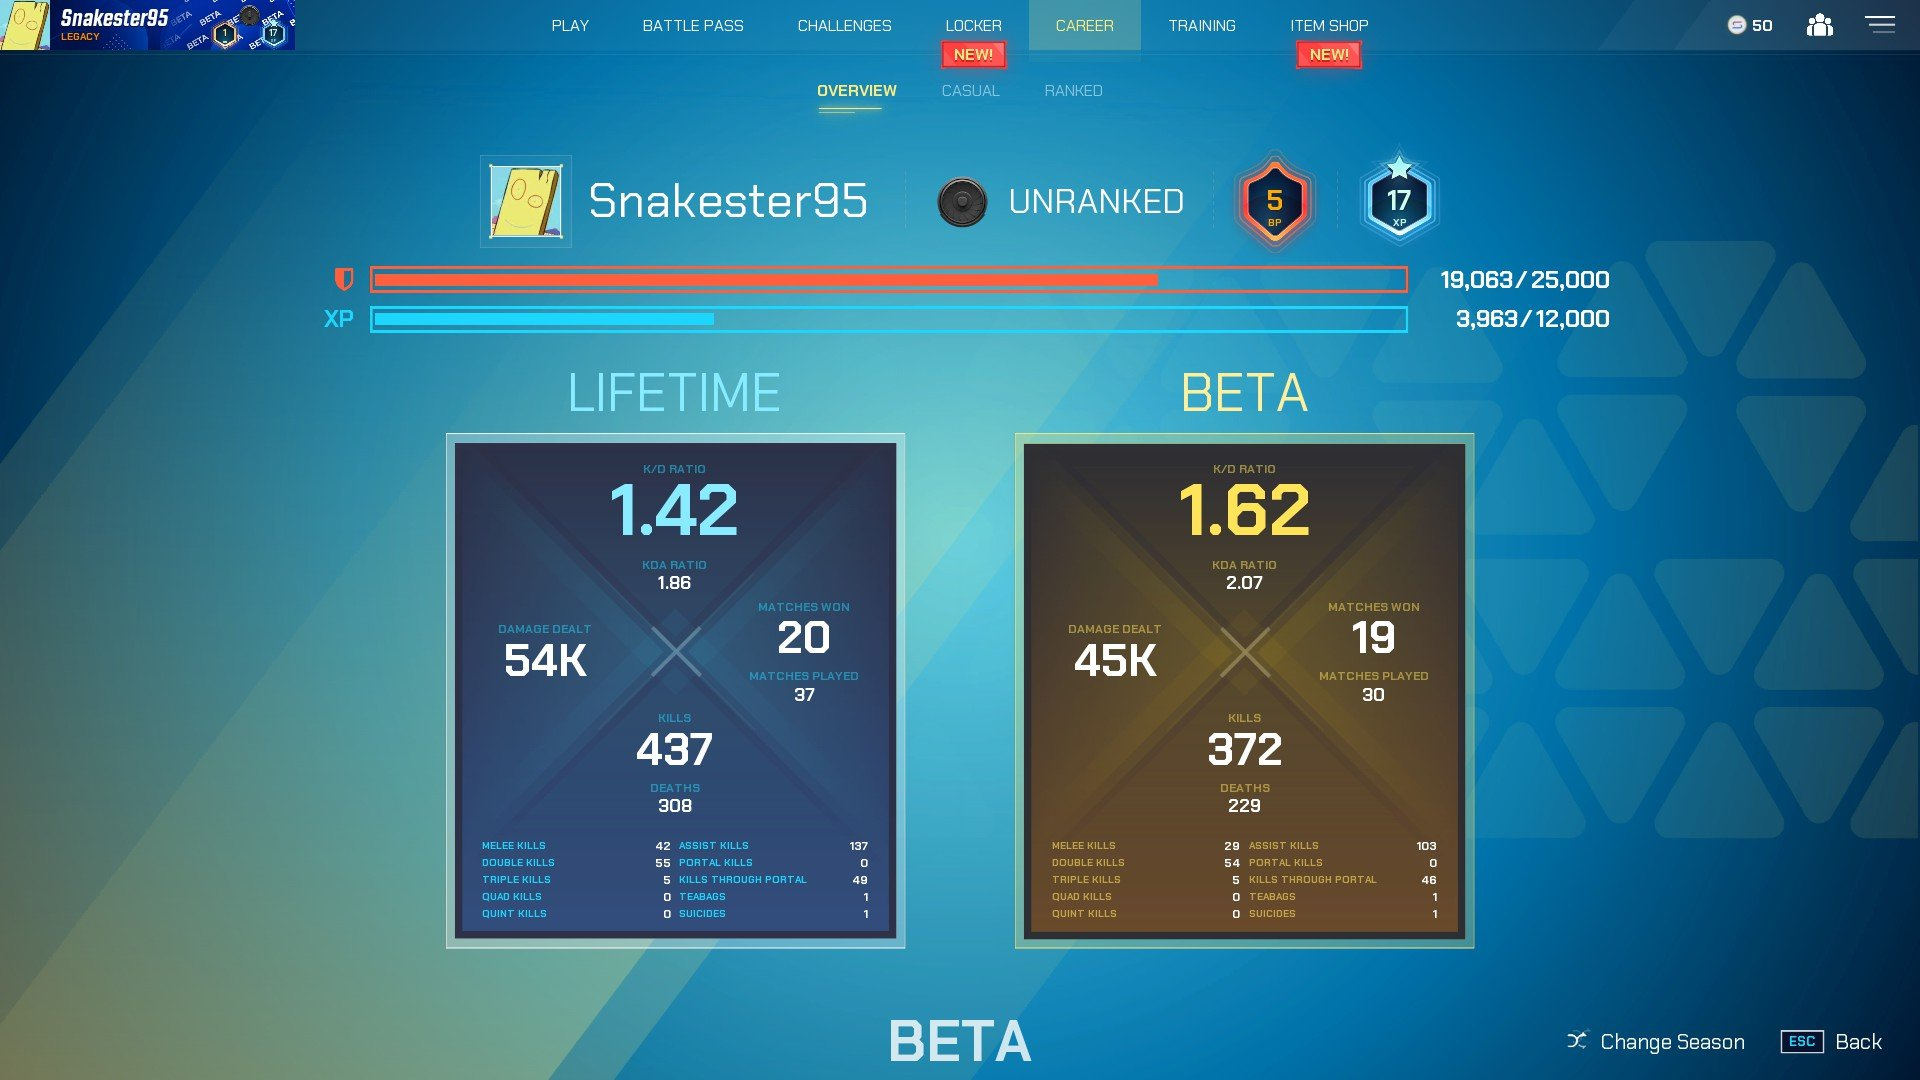 Splitgate - Career Stats Page